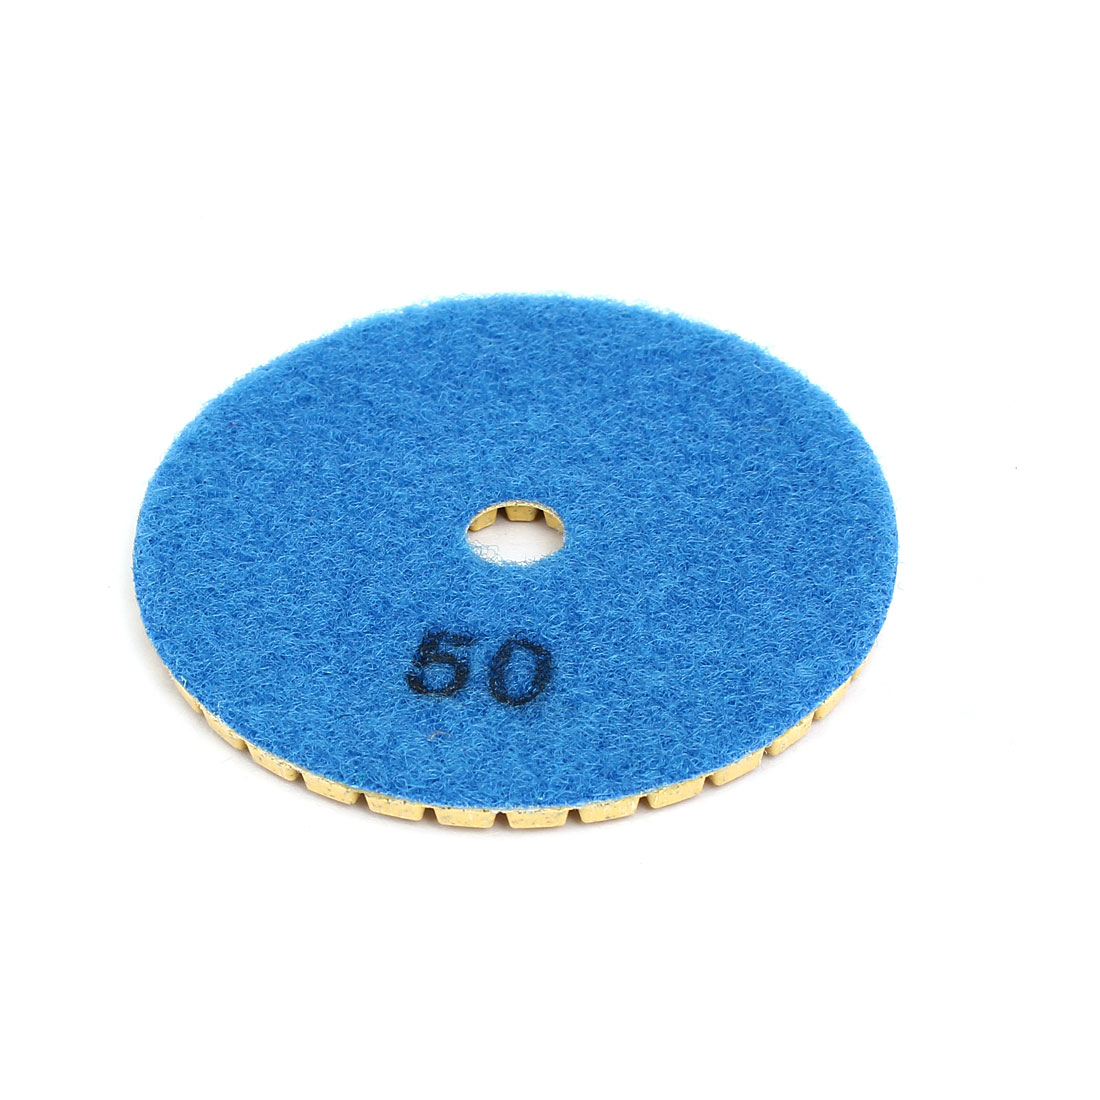 Grit 50 3-inch Diamond Wet Polishing Pad for Granite Concrete Marble